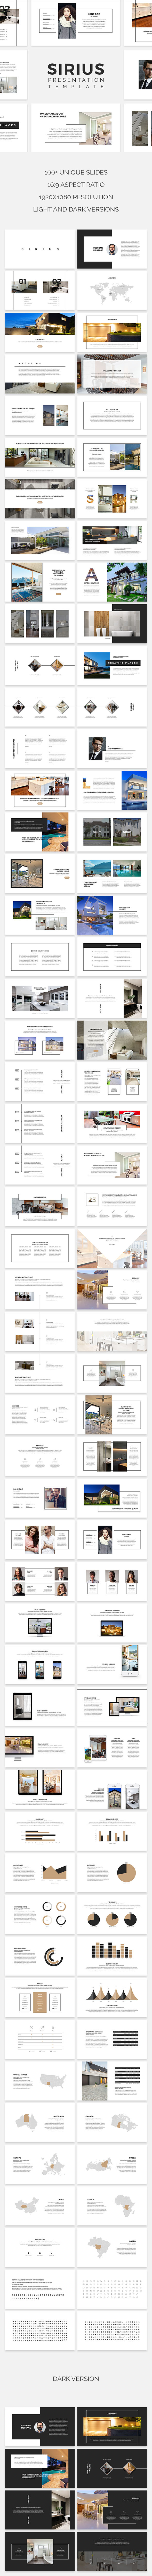 Sirius PowerPoint Template - PowerPoint Templates Presentation Templates